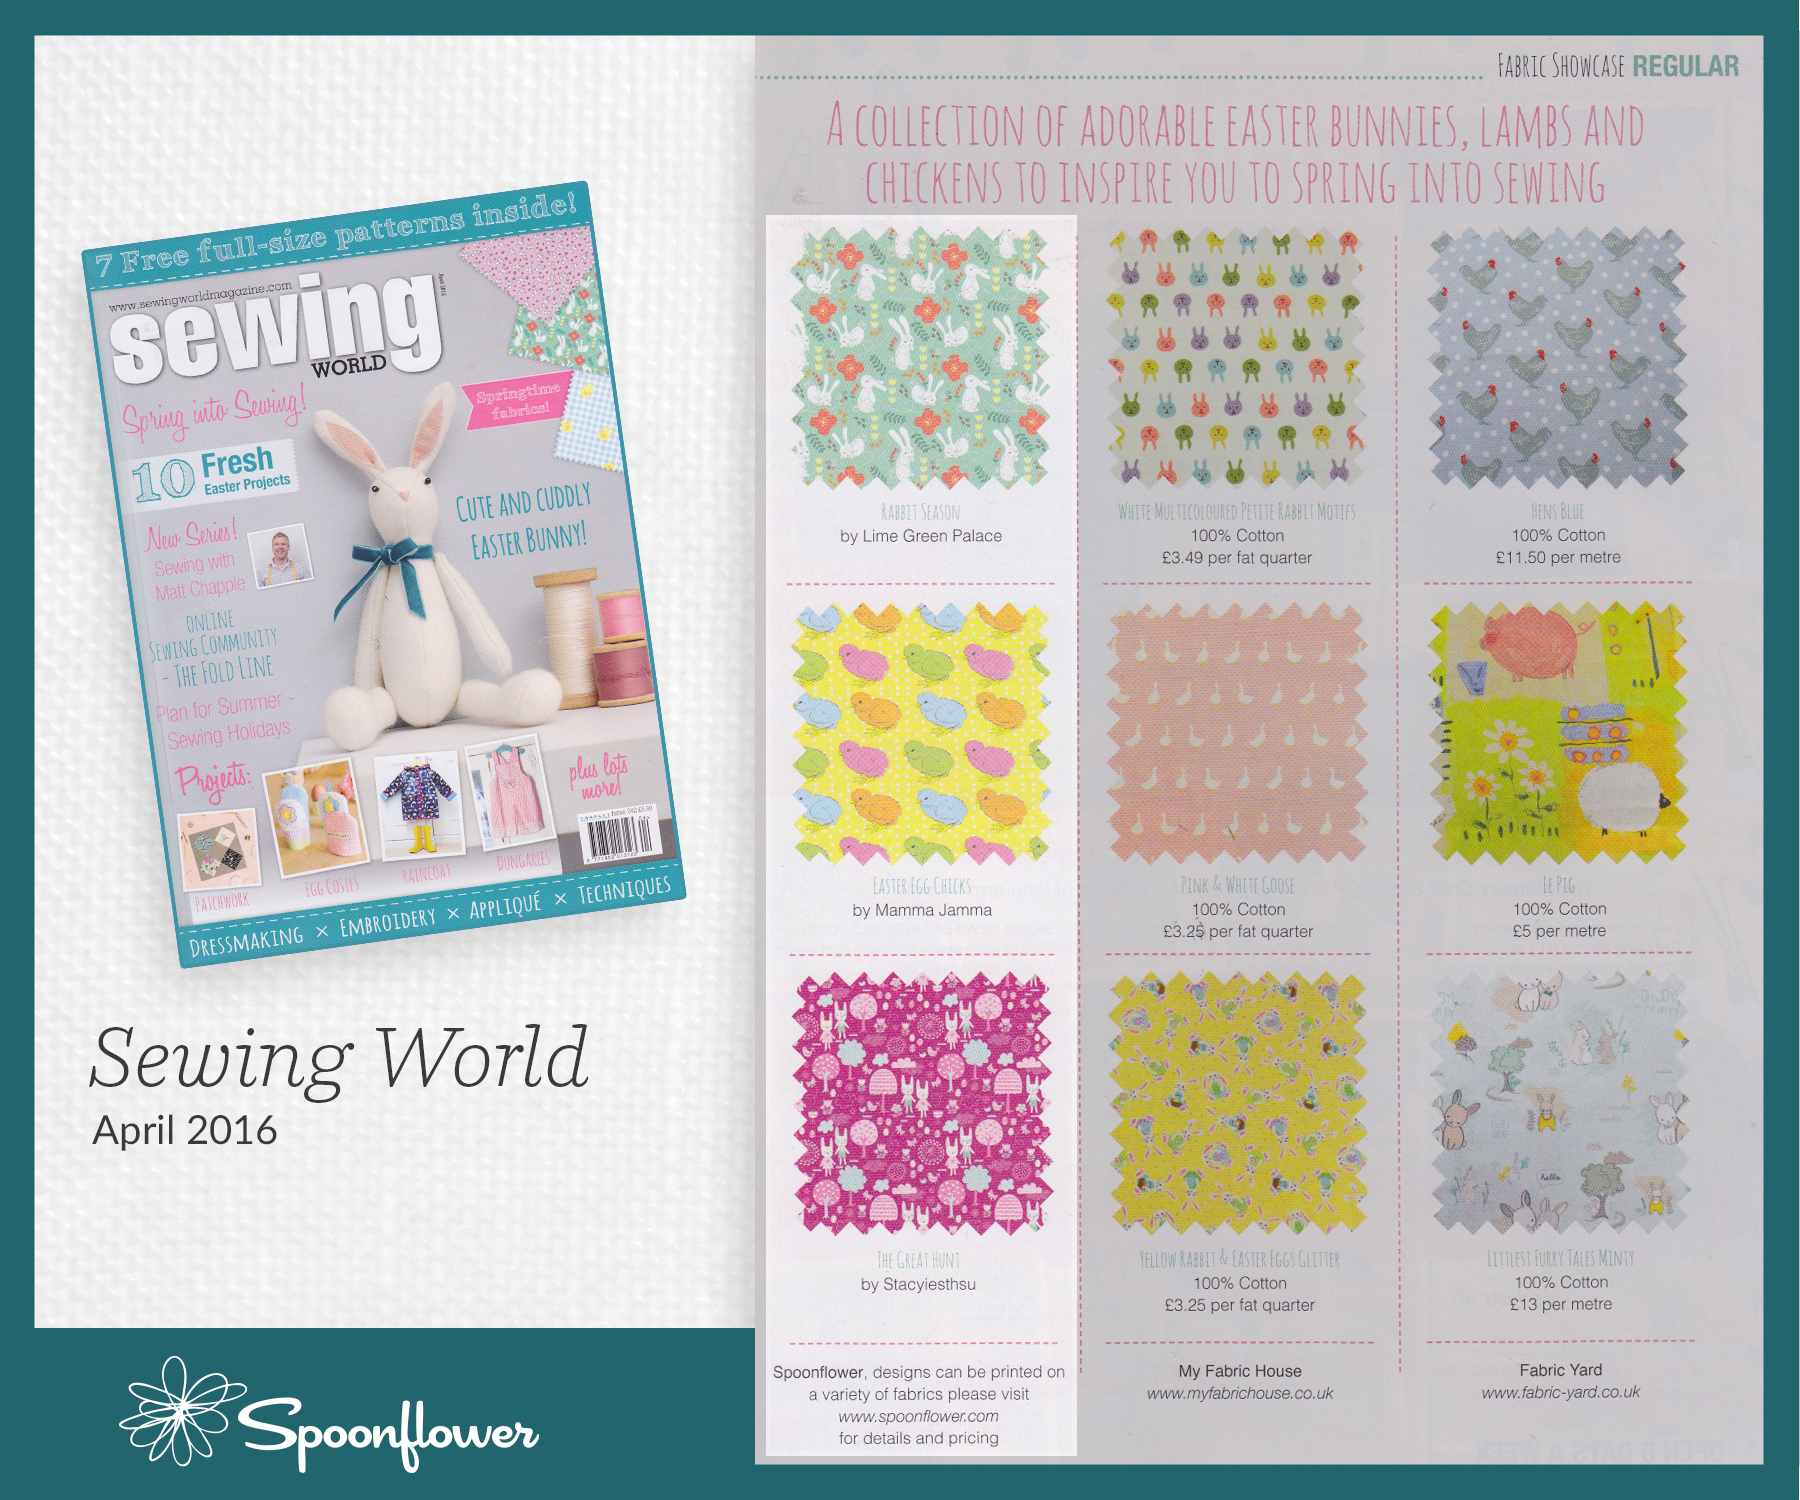 Press press releases spoonflower sewing world december 2015 gay weddings magazine fall 2015 hgtv magazine october 2015 real simple september 2015 jeuxipadfo Choice Image